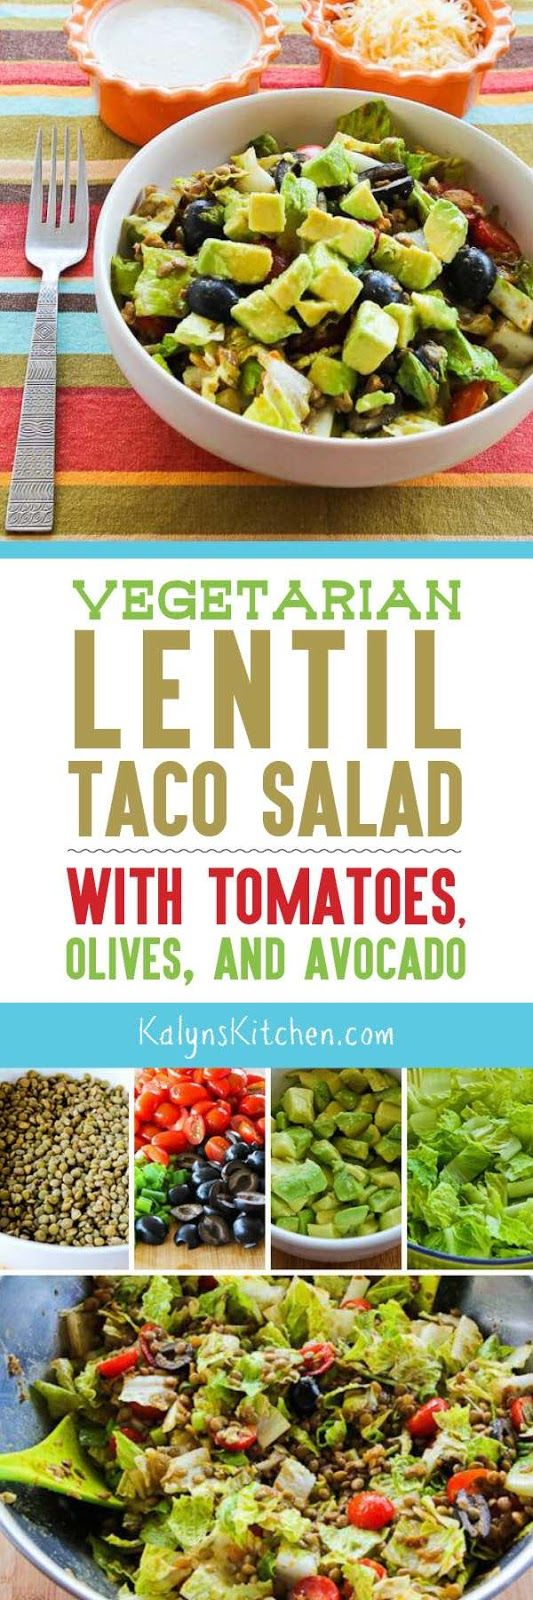 This  Vegetarian Lentil Taco Salad with Tomatoes, Olive, and Avocado is delicious for a meatless meal that's low-glycemic, gluten-free, and South Beach Diet friendly! [found on KalynsKitchen.com]